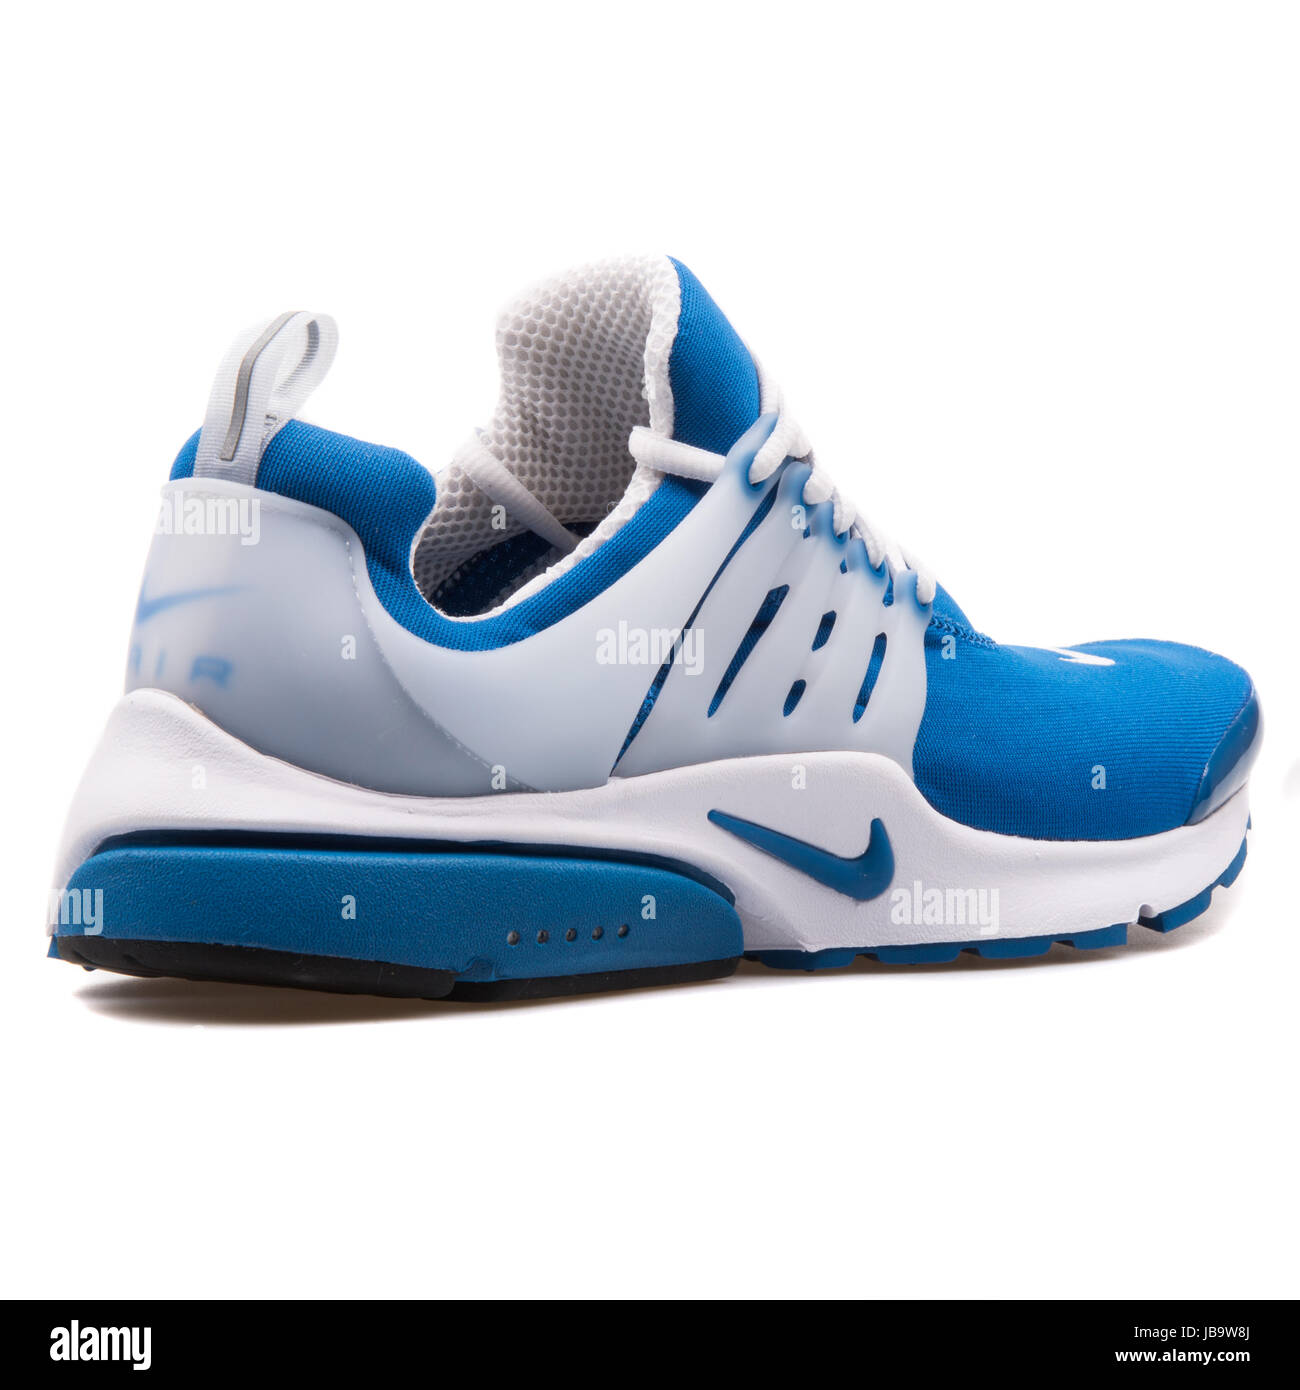 finest selection ea7ca b0fde Nike Air Presto QS Blue and White Men s Running Shoes - 789870-413 - Stock